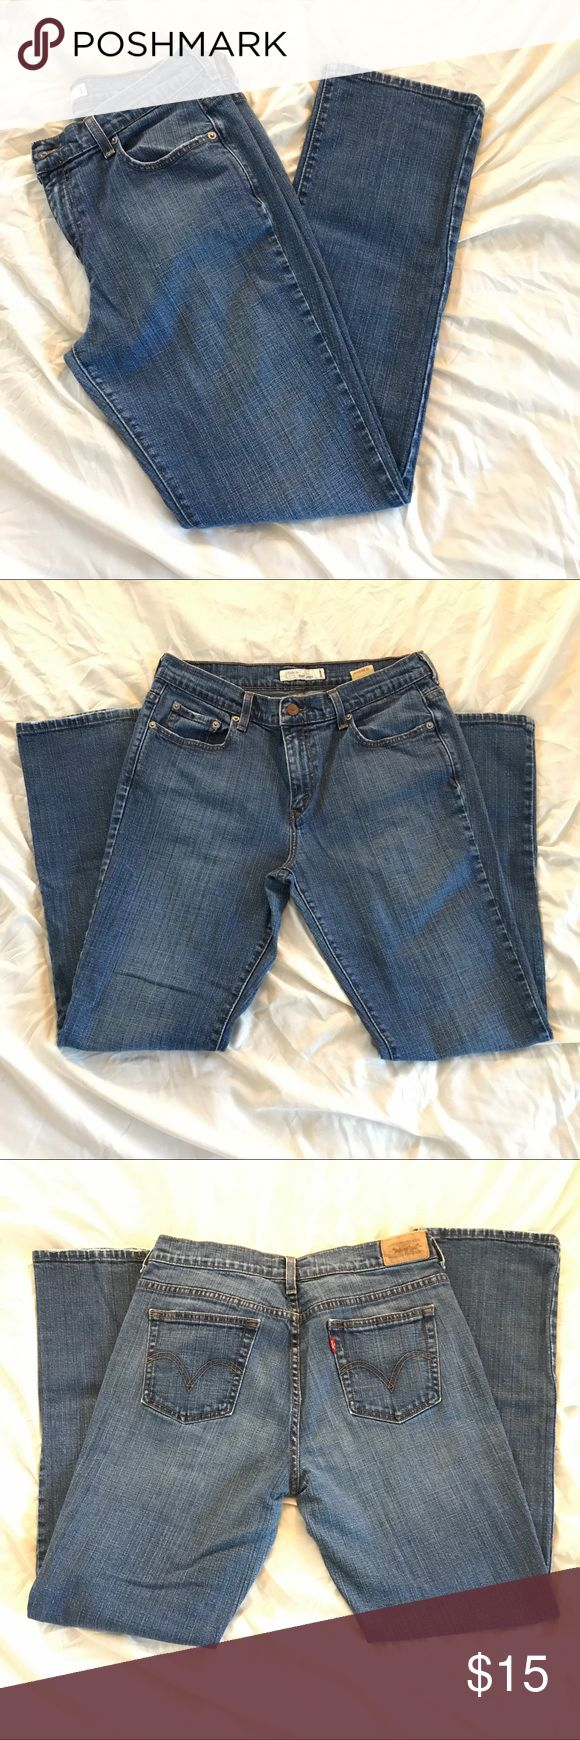 Women's Levi's 505 Jeans Women's Levi's 505 Straight Leg Jeans. Size 10M. In Great Condition. No Tears Or Stains. Levi's Jeans Straight Leg